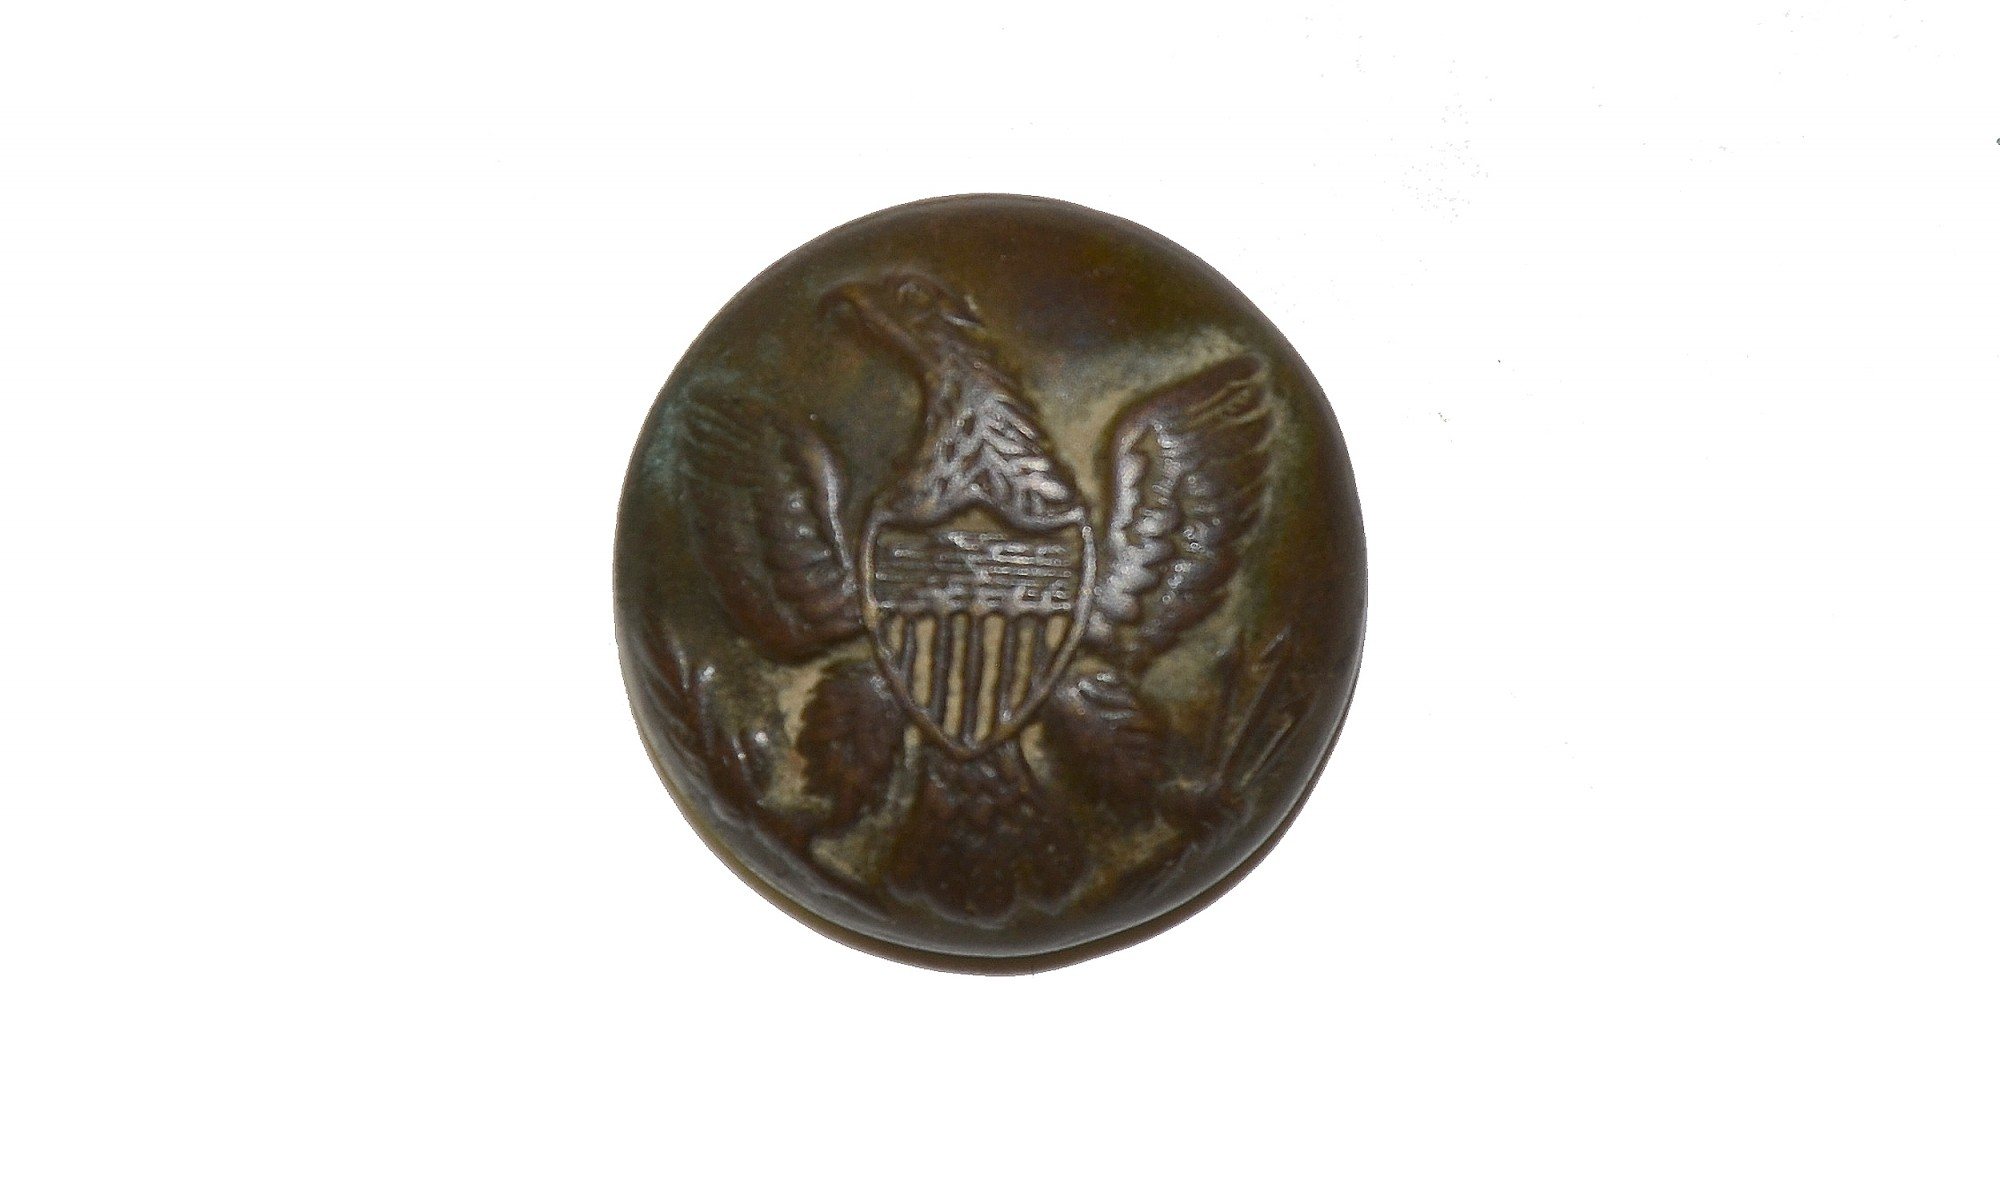 EAGLE BUTTON RECOVERED AT ROSE WOODS, GETTYSBURG